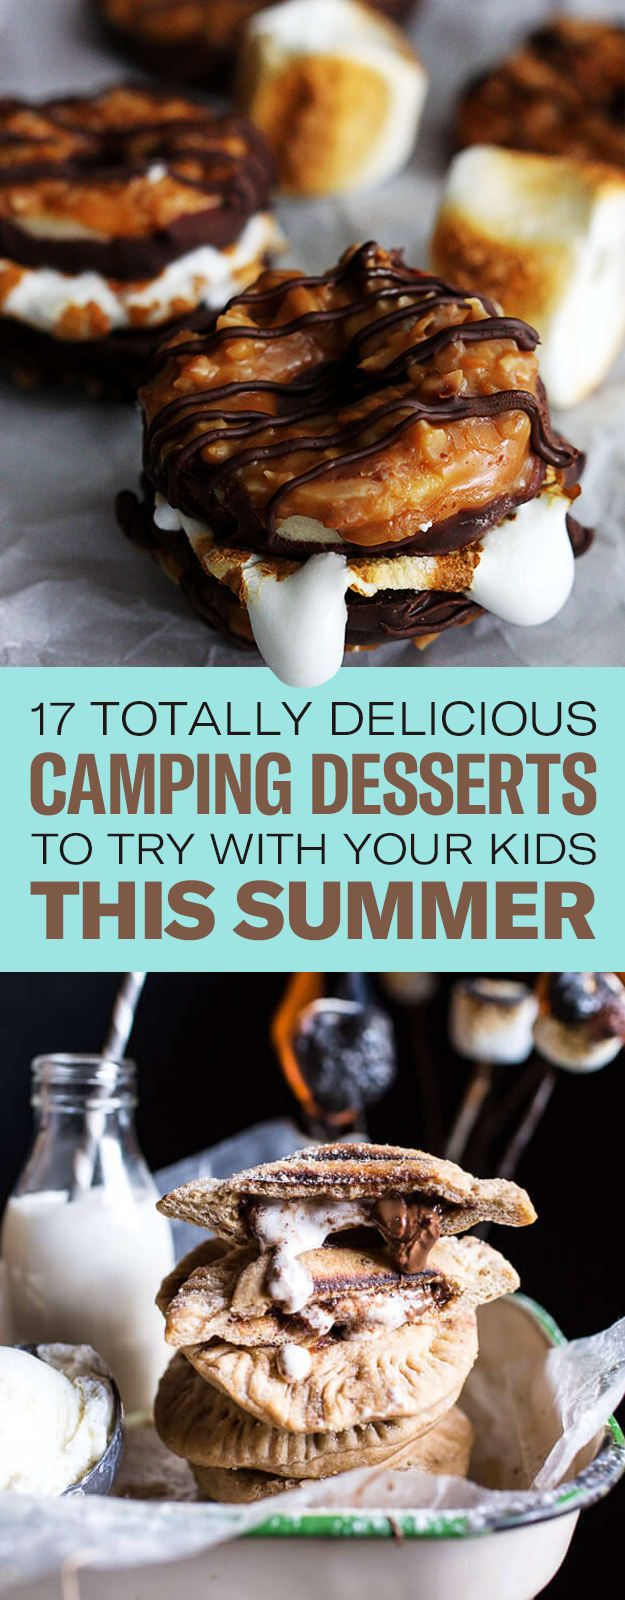 """17 Totally Delicious Camping Desserts That'll Make Your Kids Say, """"Let's Go, Let's Go!"""""""